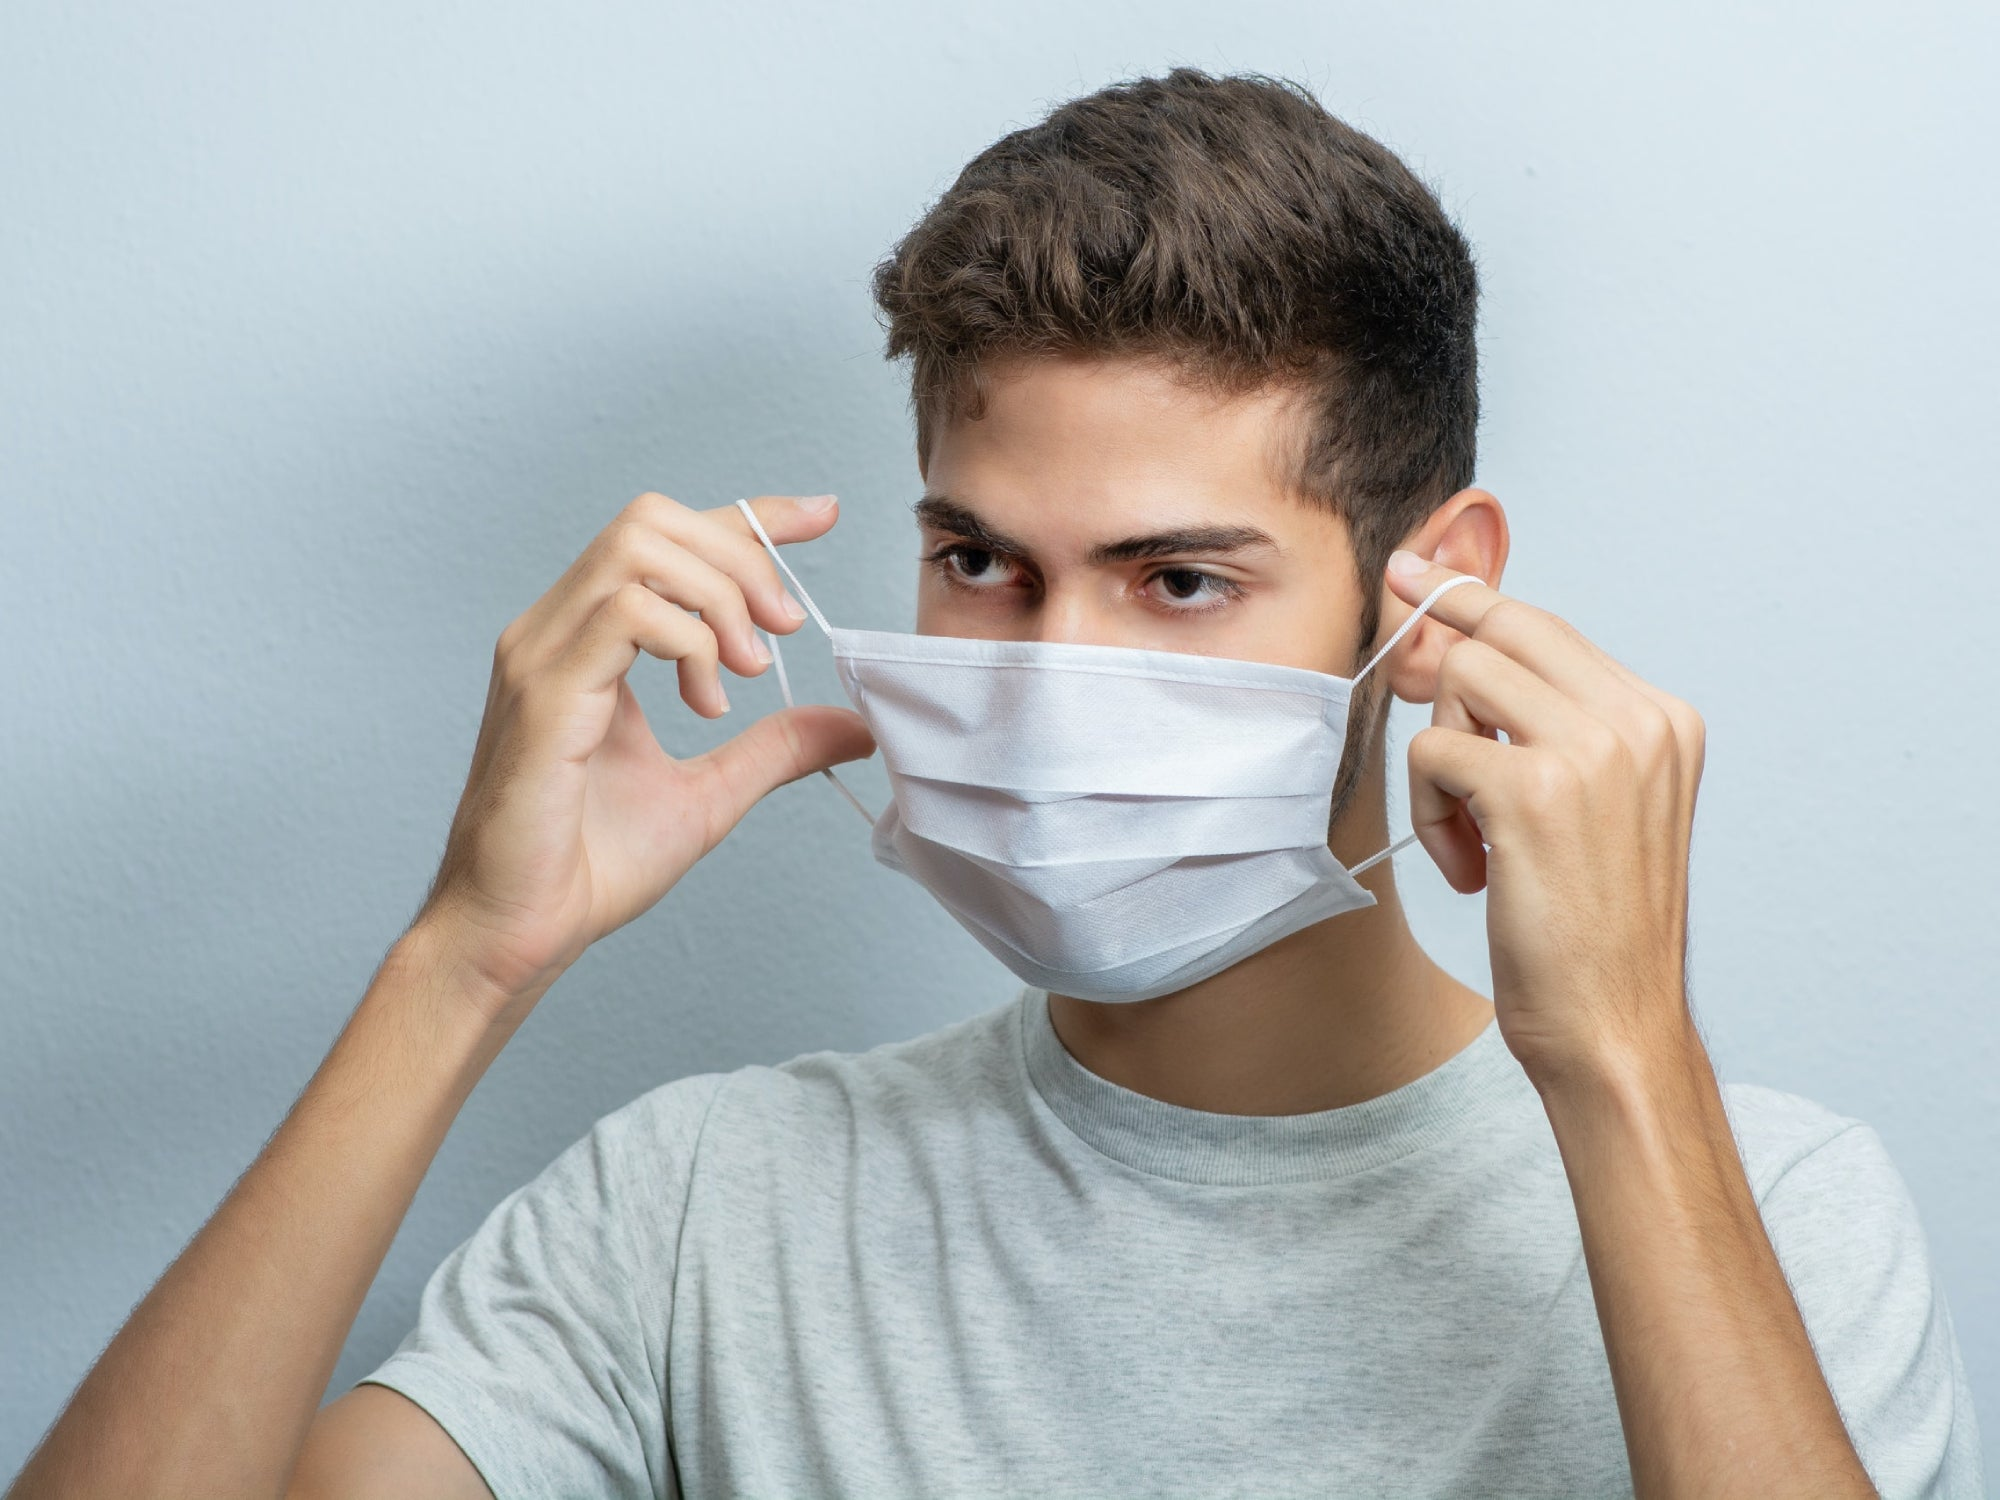 A man in a gray t-shirt removing or putting on a surgical face mask by only touching the ear loops.